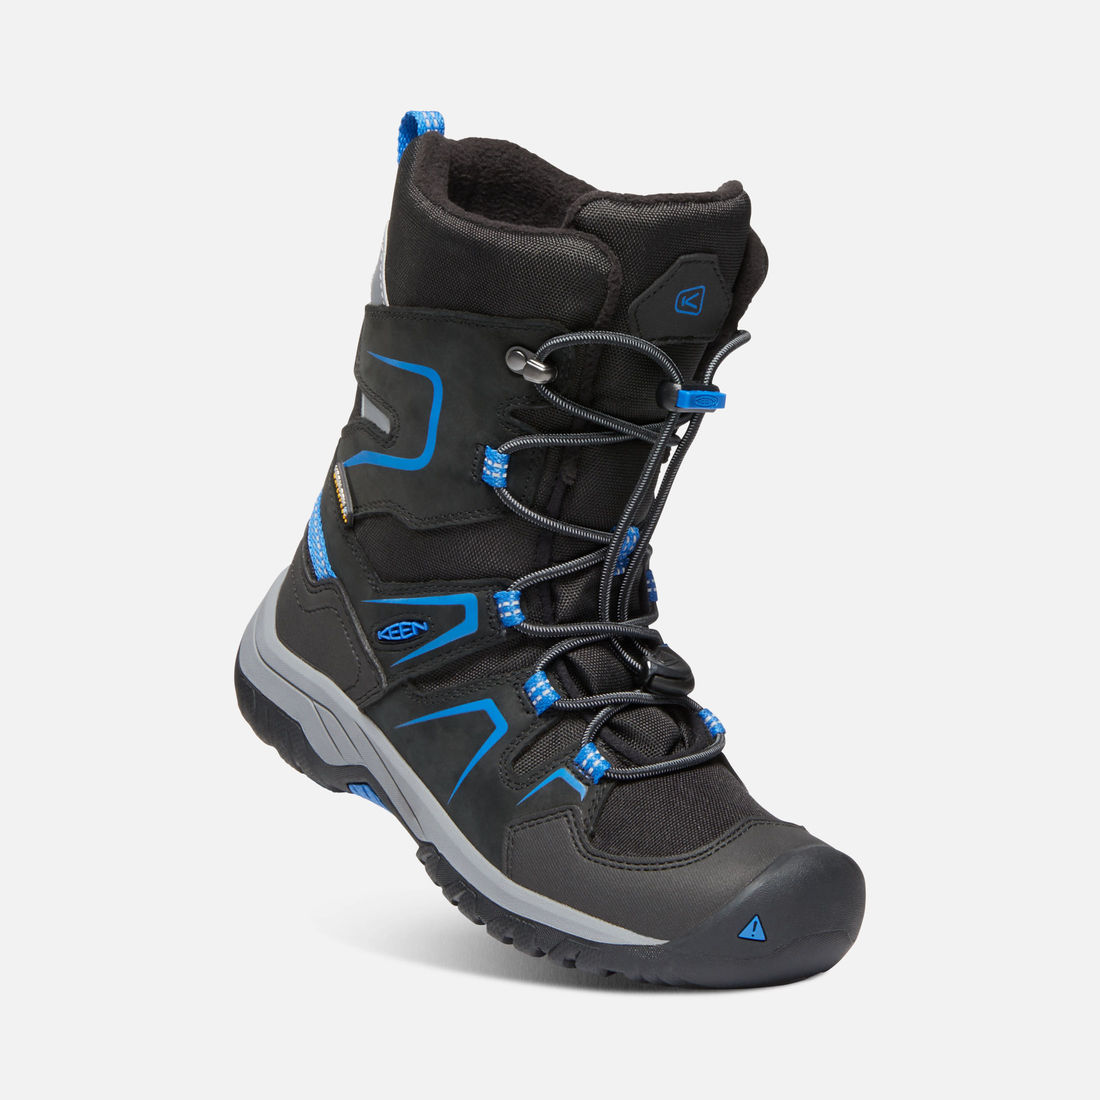 KEEN LEVO WATERPROOF WINTER BOOT černé vel.35